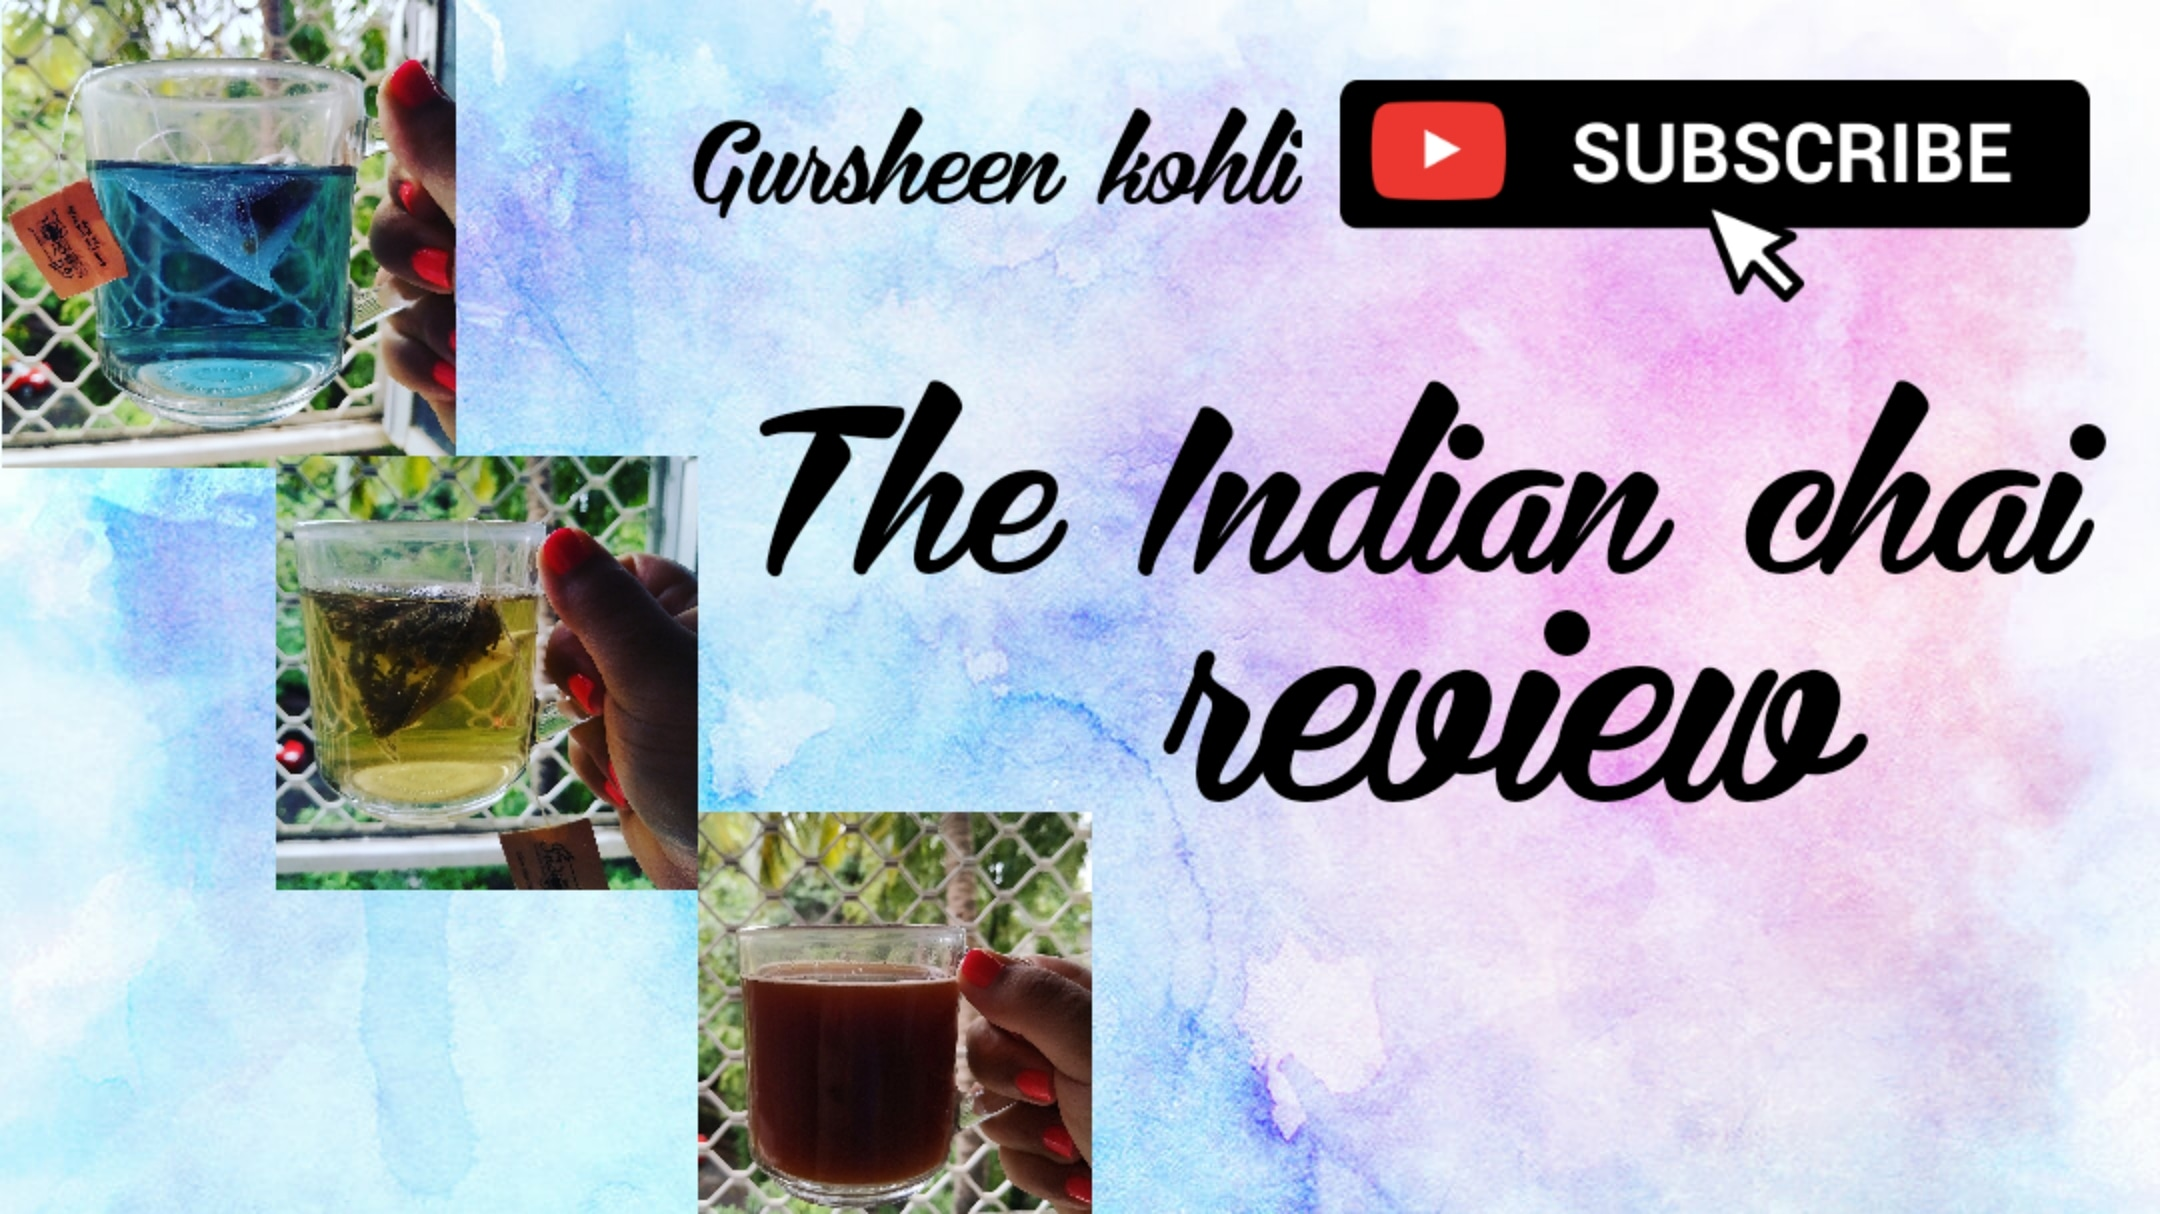 undefined-The indian chai review....